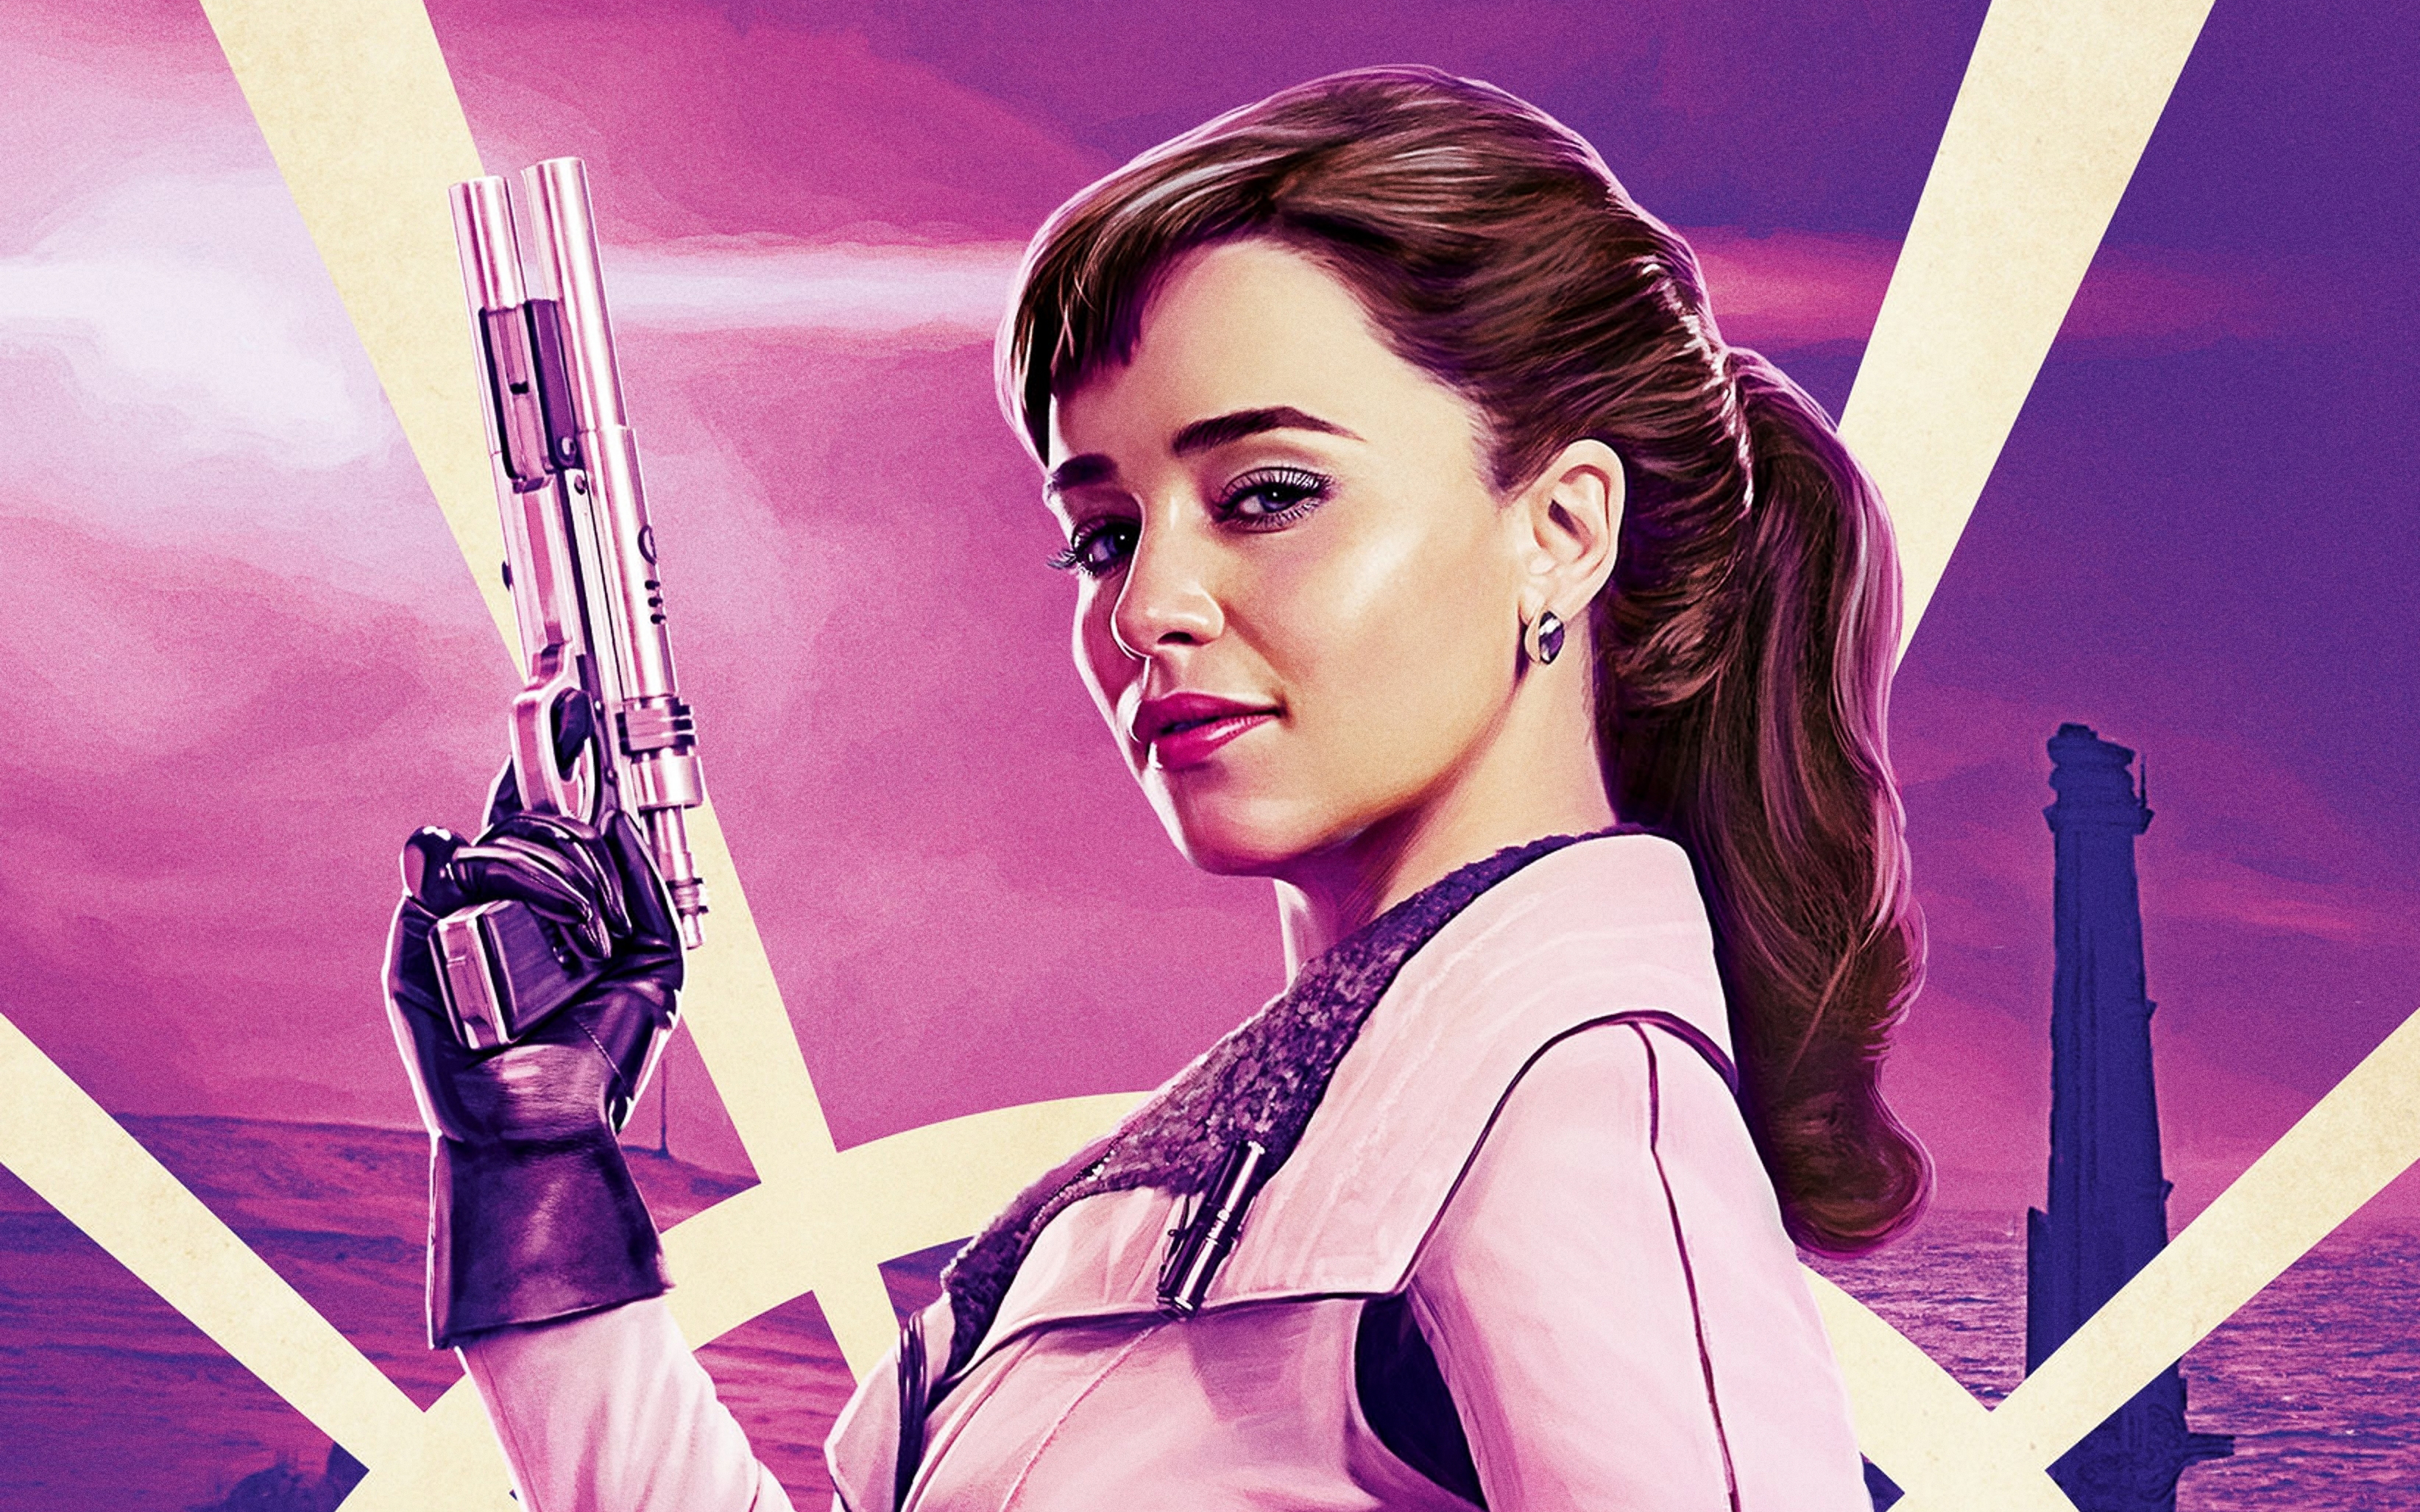 4K Emilia Clarke as Qi'Ra in Solo A Star Wars Story Wallpaper